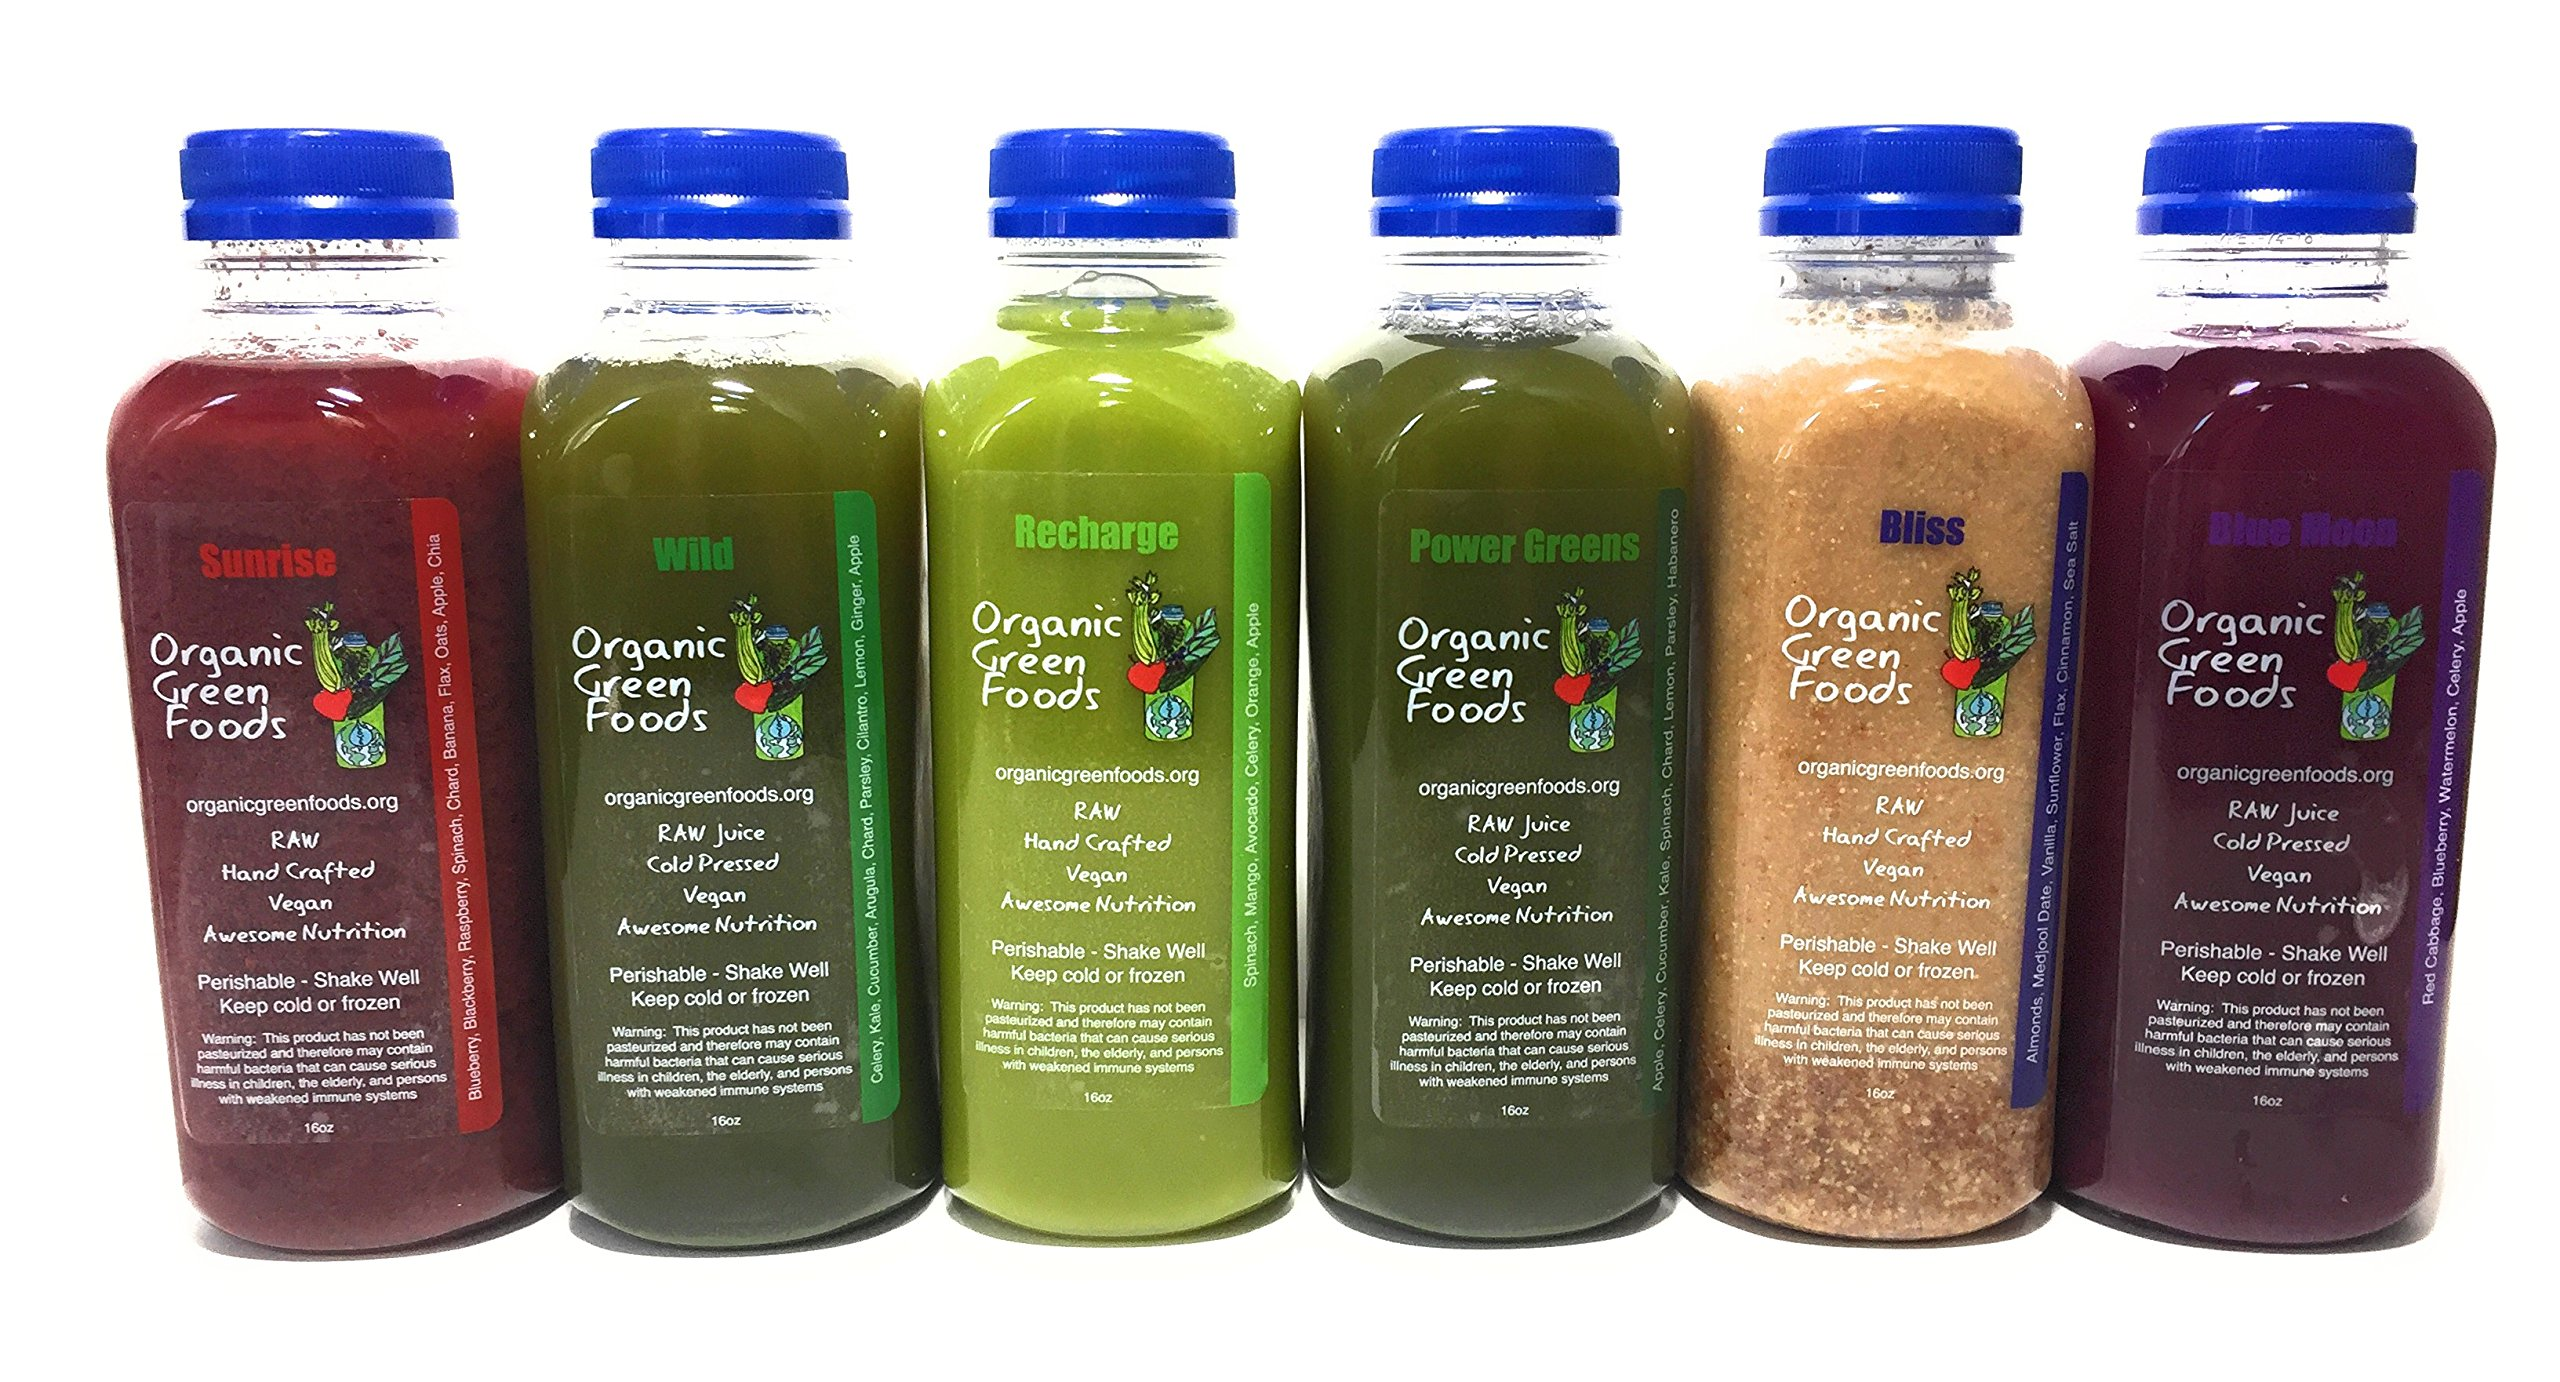 Organic Green Foods 3 Day Raw Signature Juice Cleanse - 18 Bottles